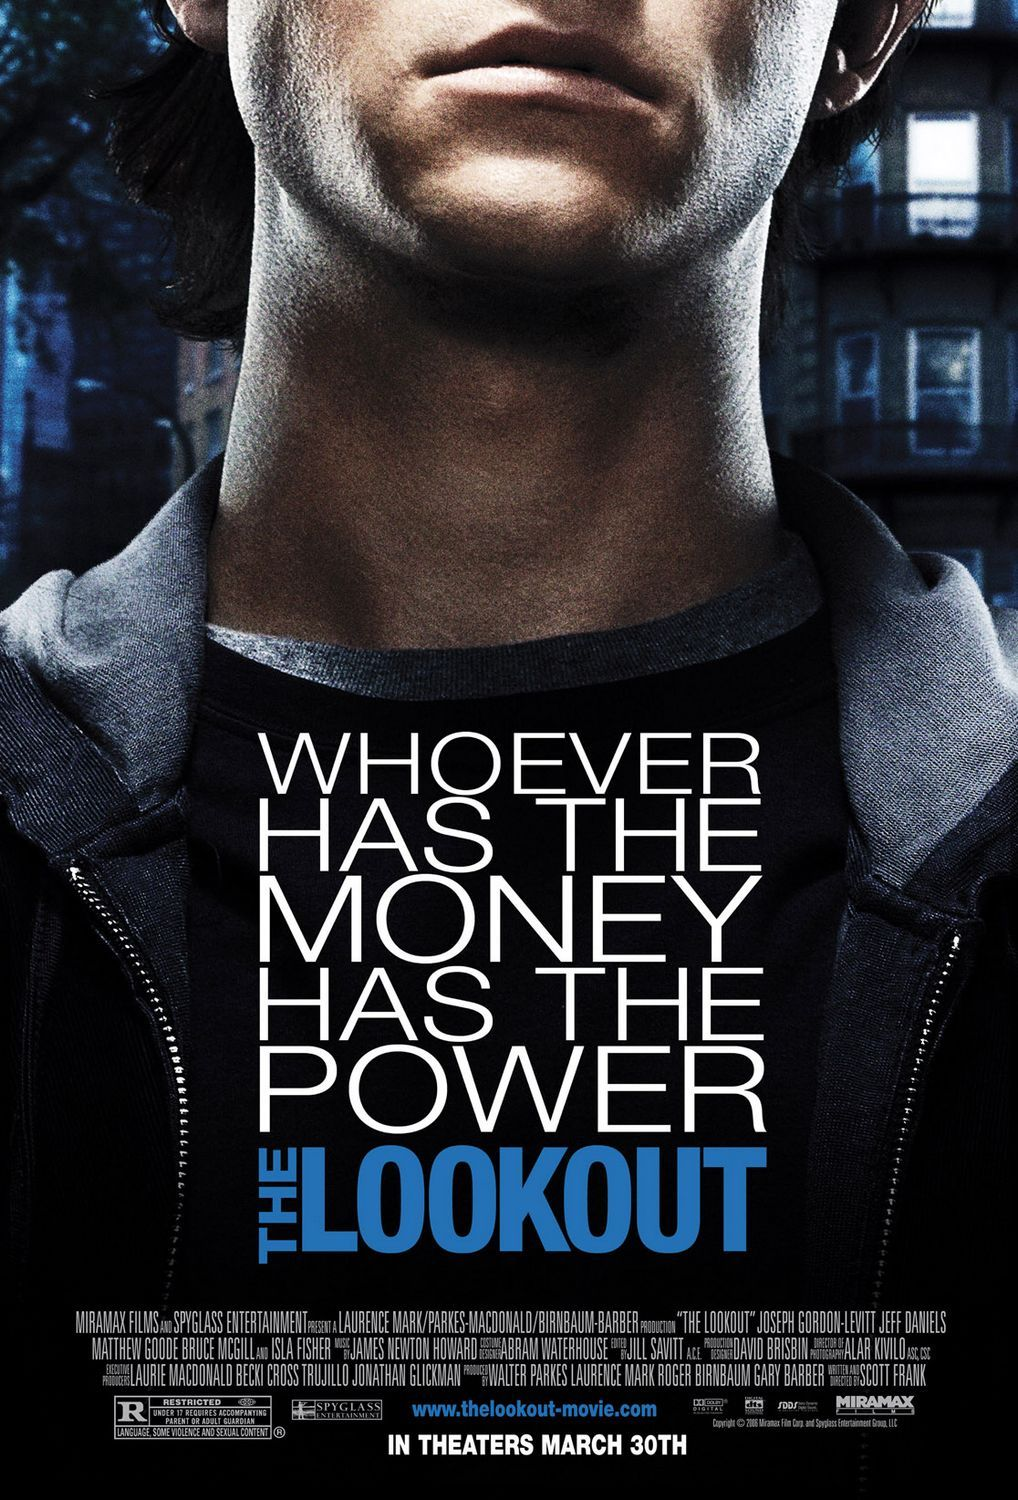 The Lookout (2007.) Movie posters, About time movie, I movie